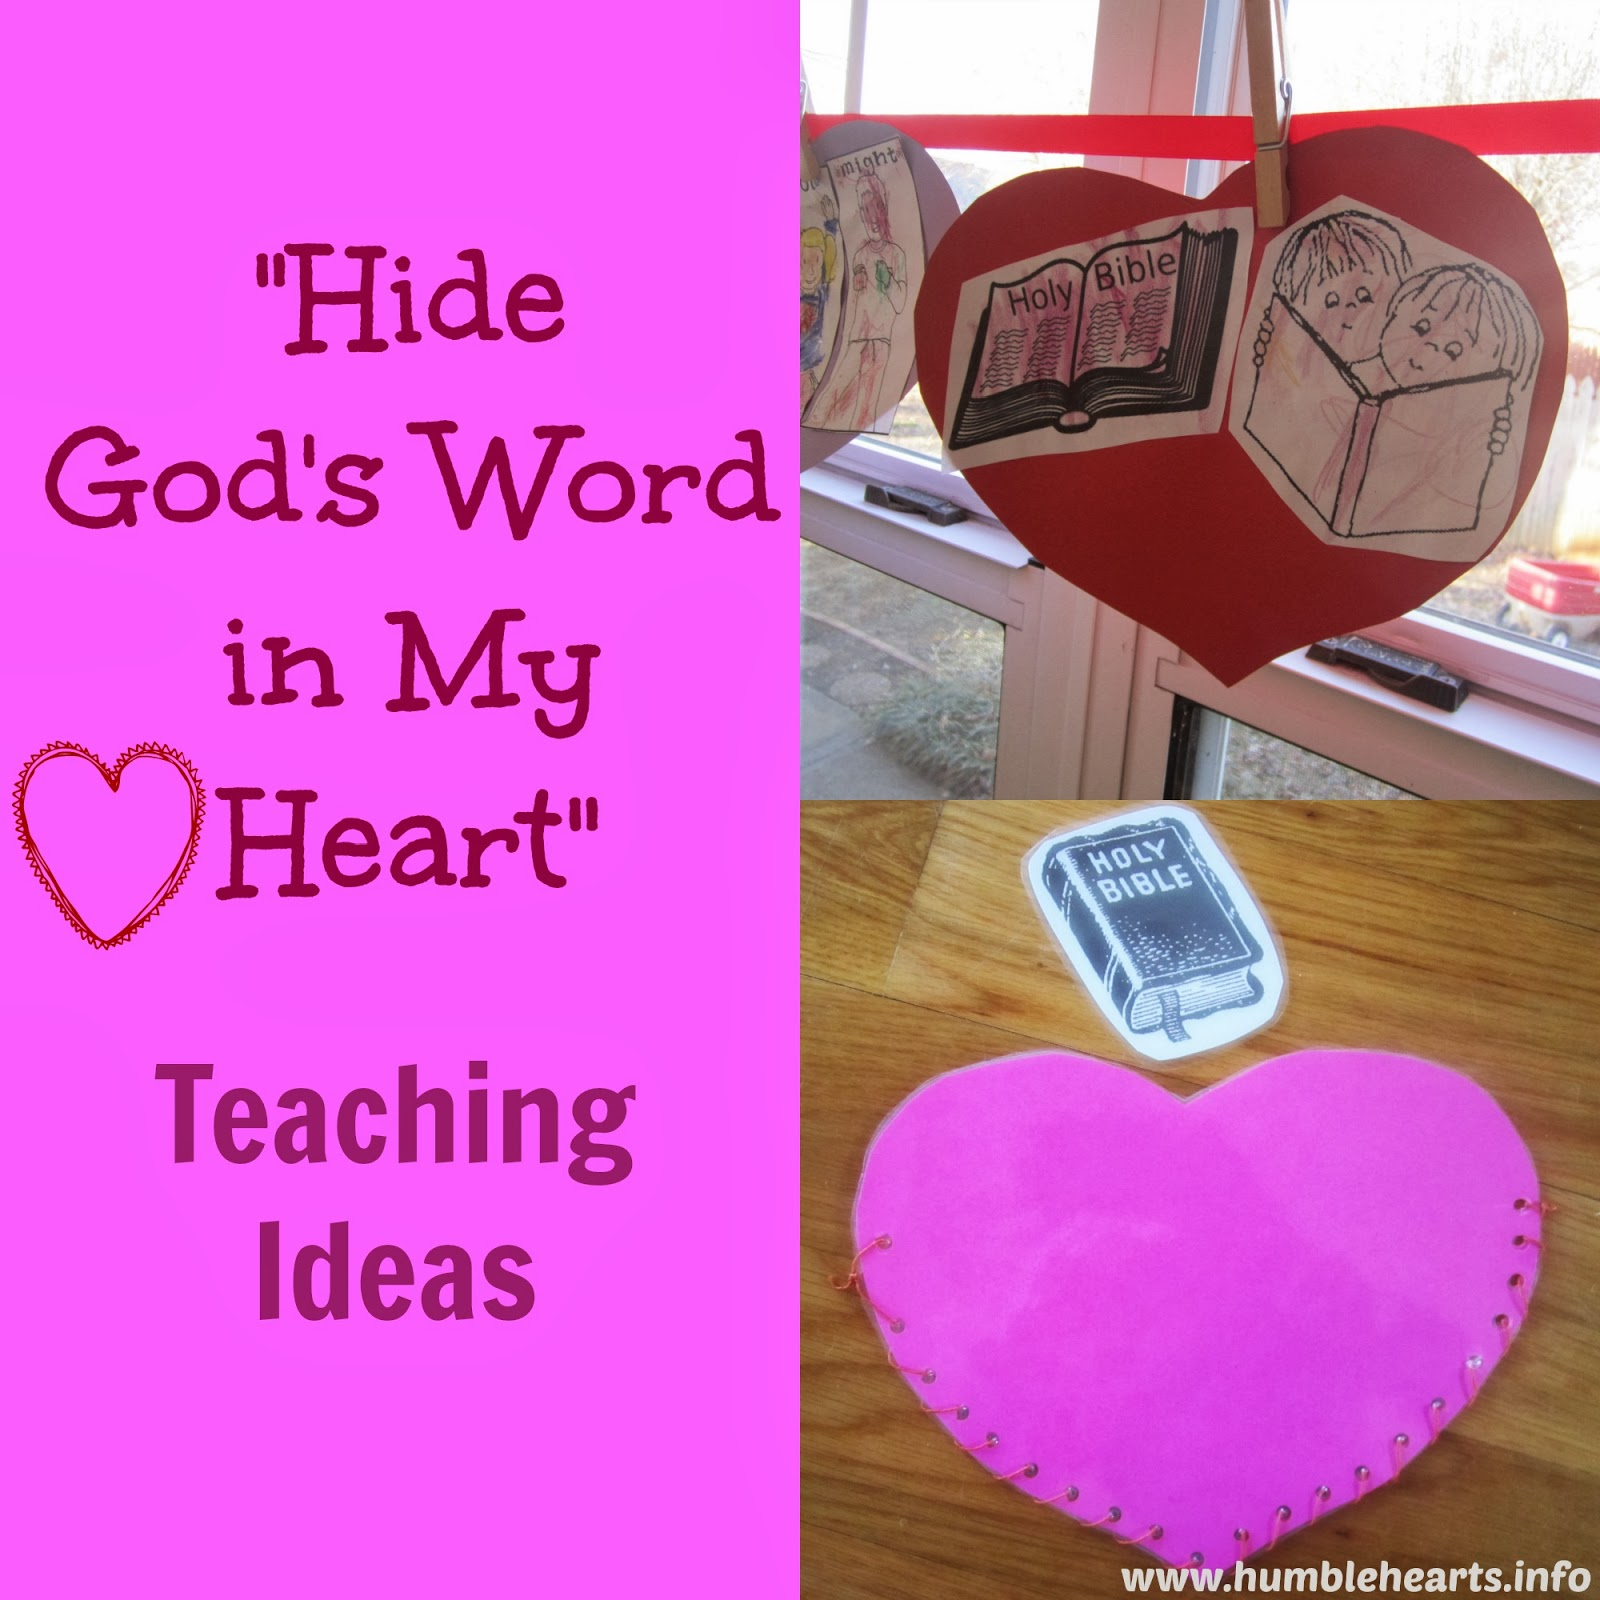 Theme Verse With Actions I Point To Self Have Hidden One Hand Behind The Other Your Word Make Bible With Hands In My Heart Hands On Heart Psalm